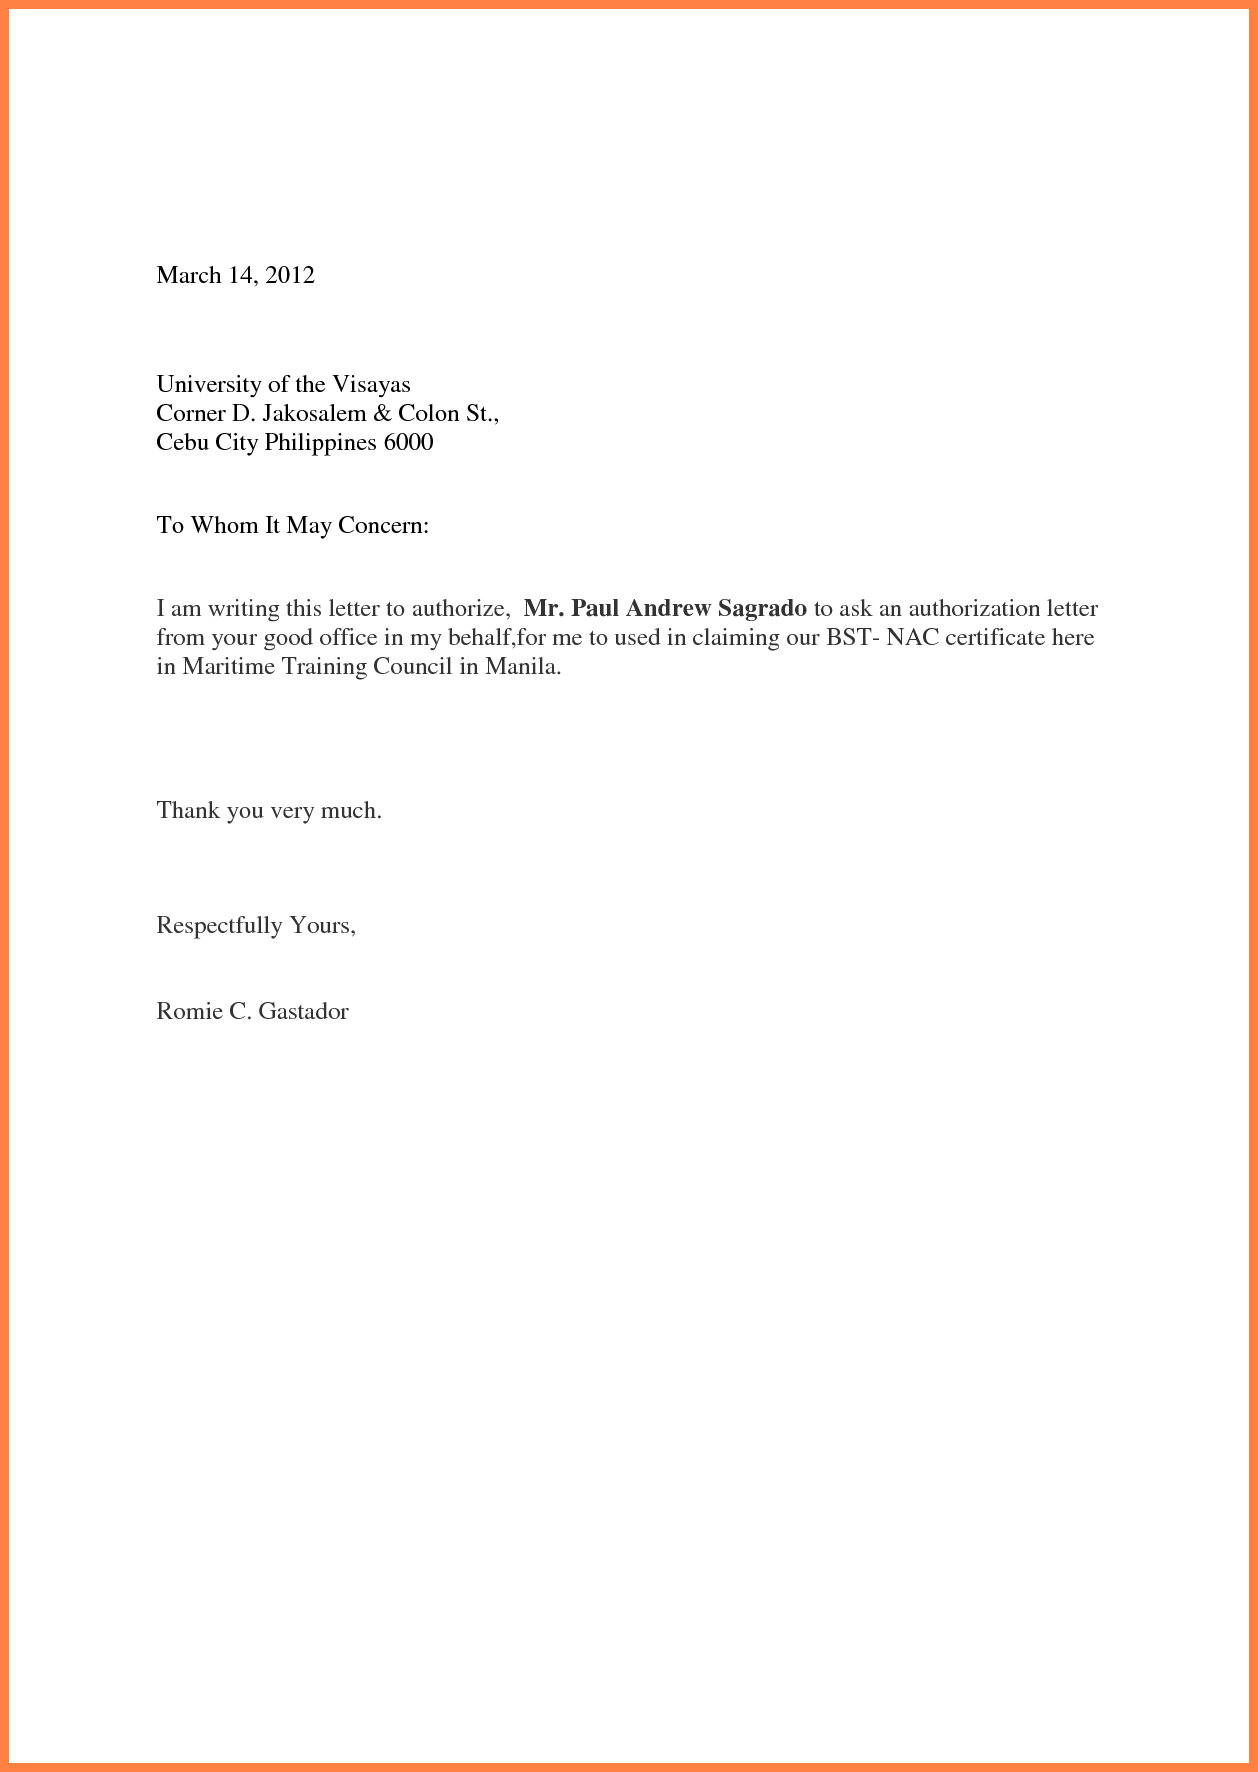 Authorization Letter For Claiming Documentsthorization Account